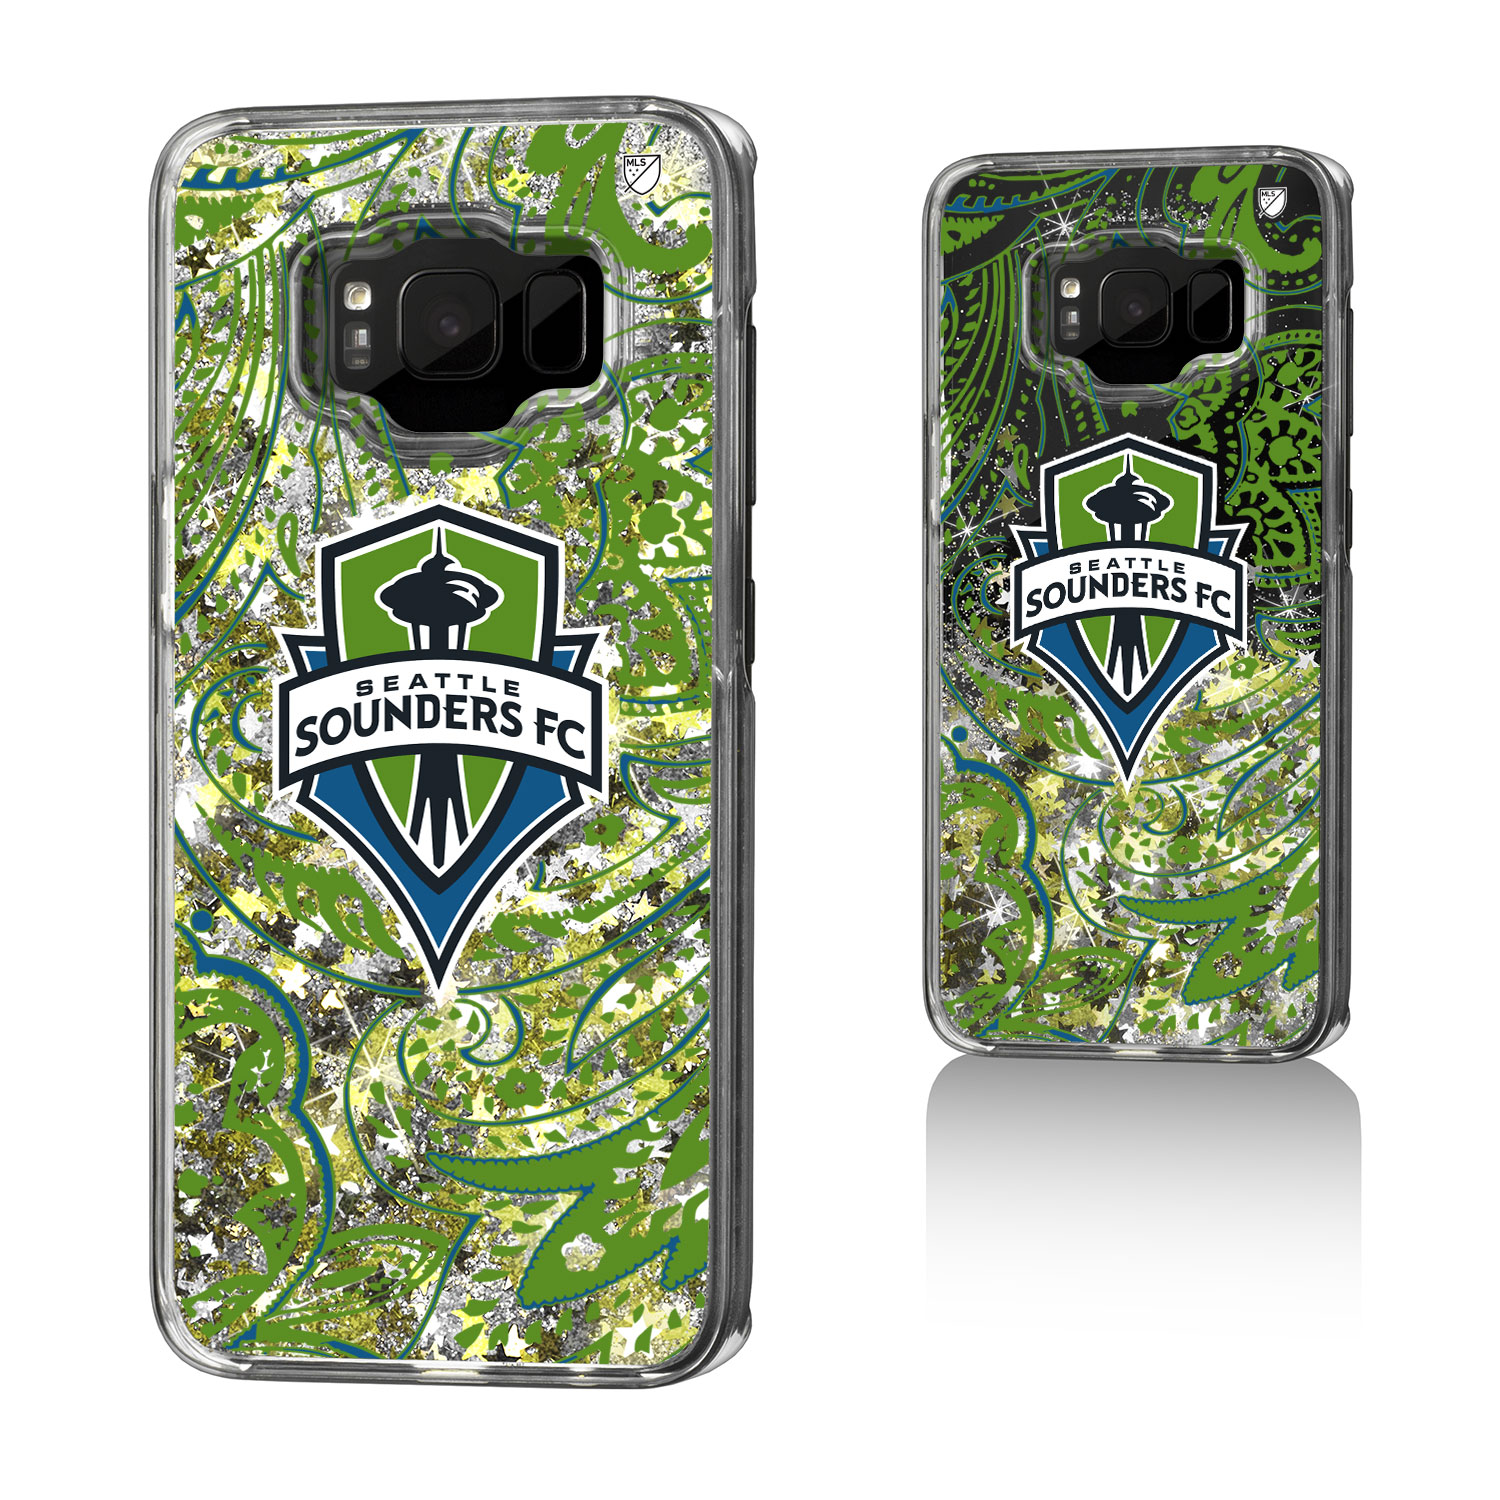 Seattle Sounders SOUNDERS FC Paisley Glitter Case for Galaxy S8